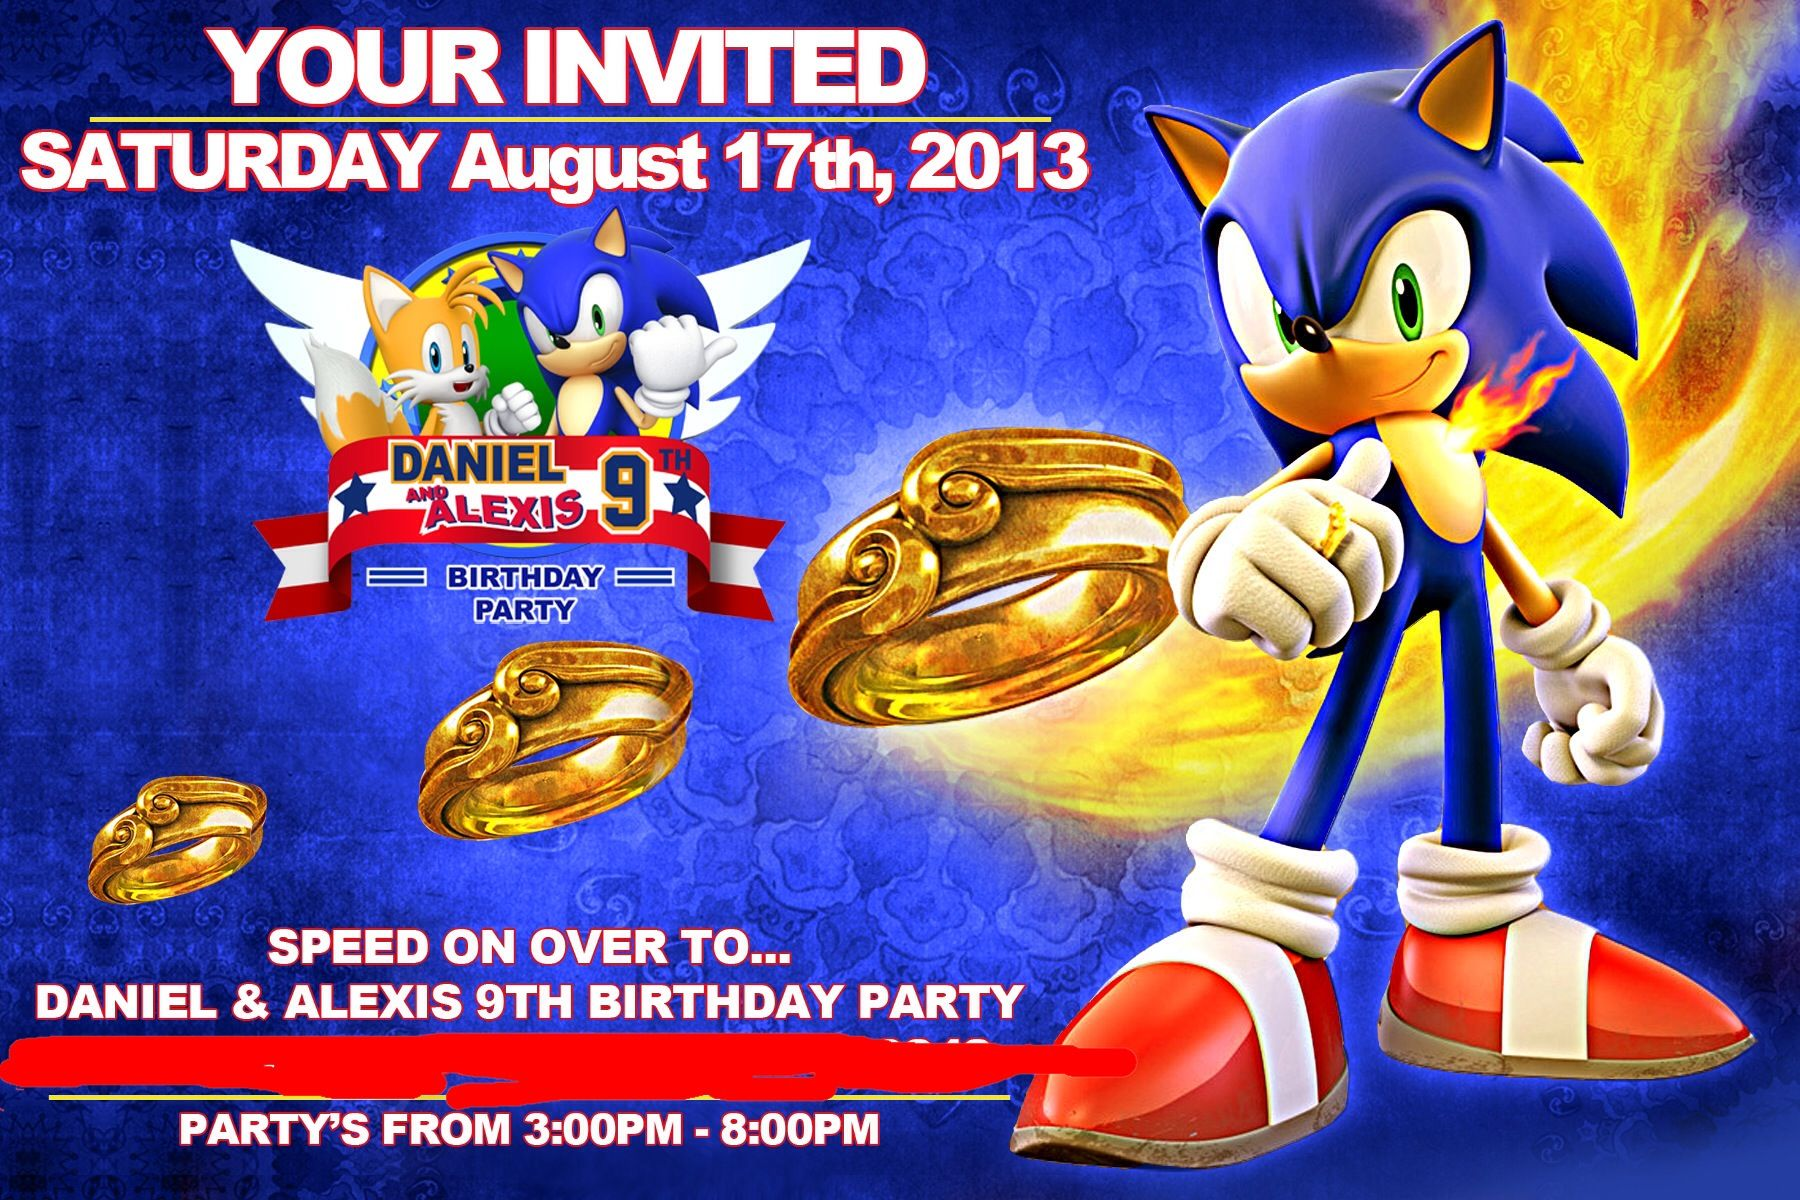 Sonic the Hedgehog birthday party invitation Sonic the hedgehog